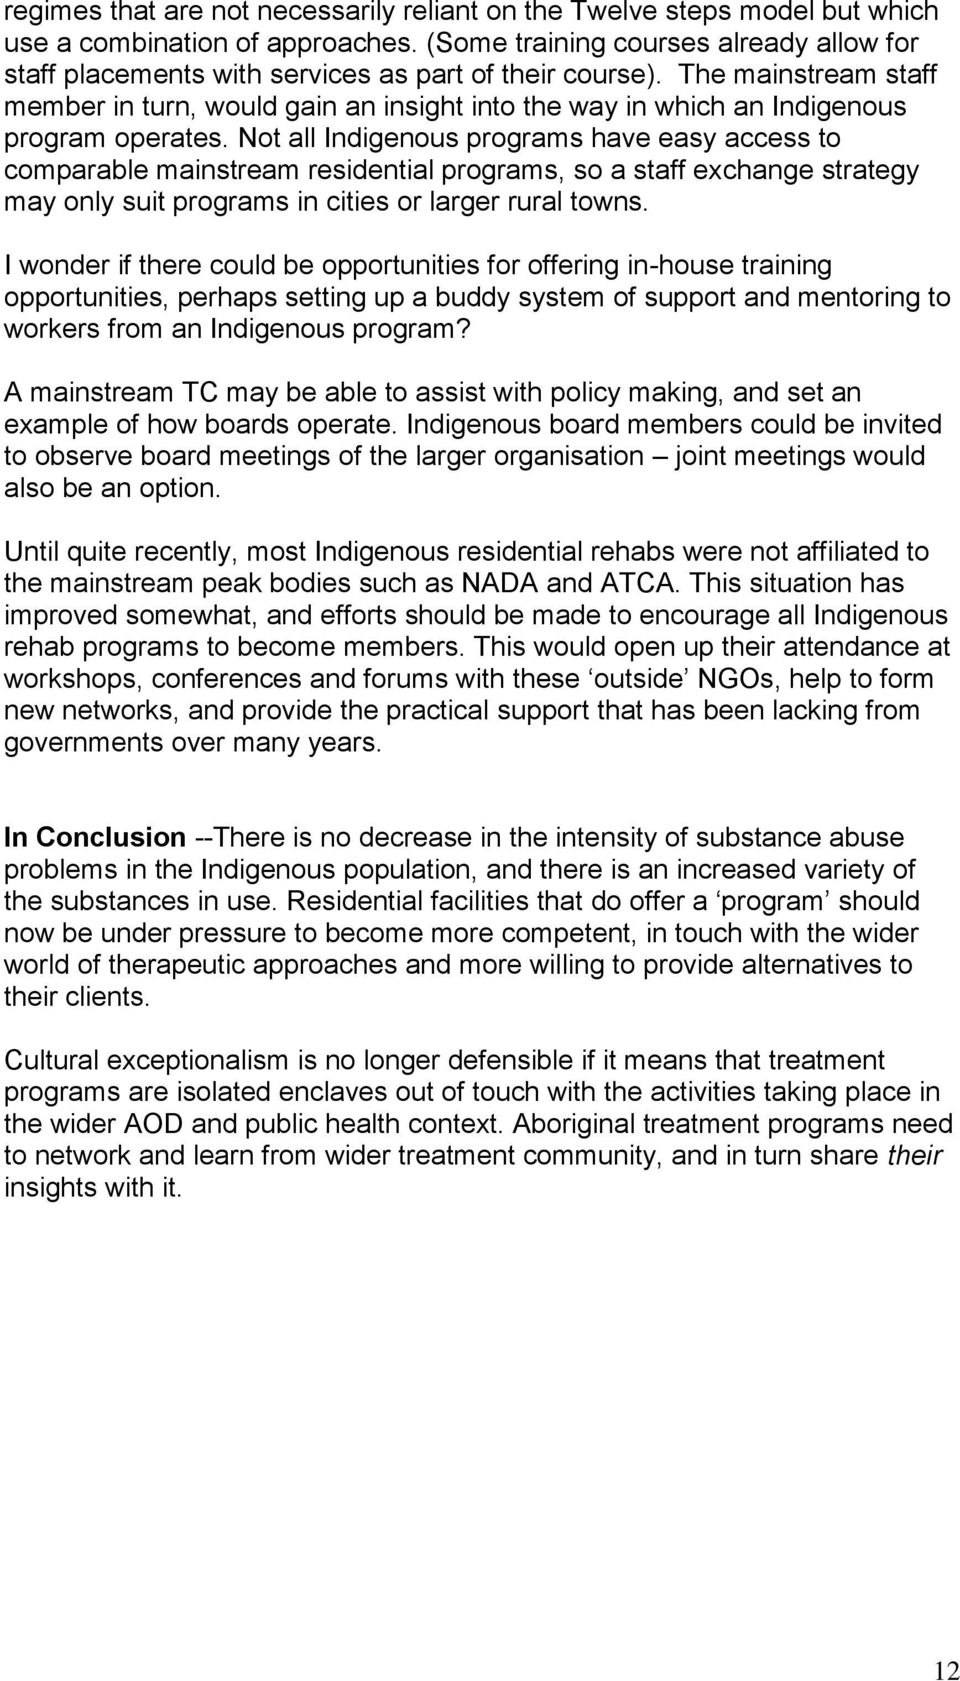 The mainstream staff member in turn, would gain an insight into the way in which an Indigenous program operates.